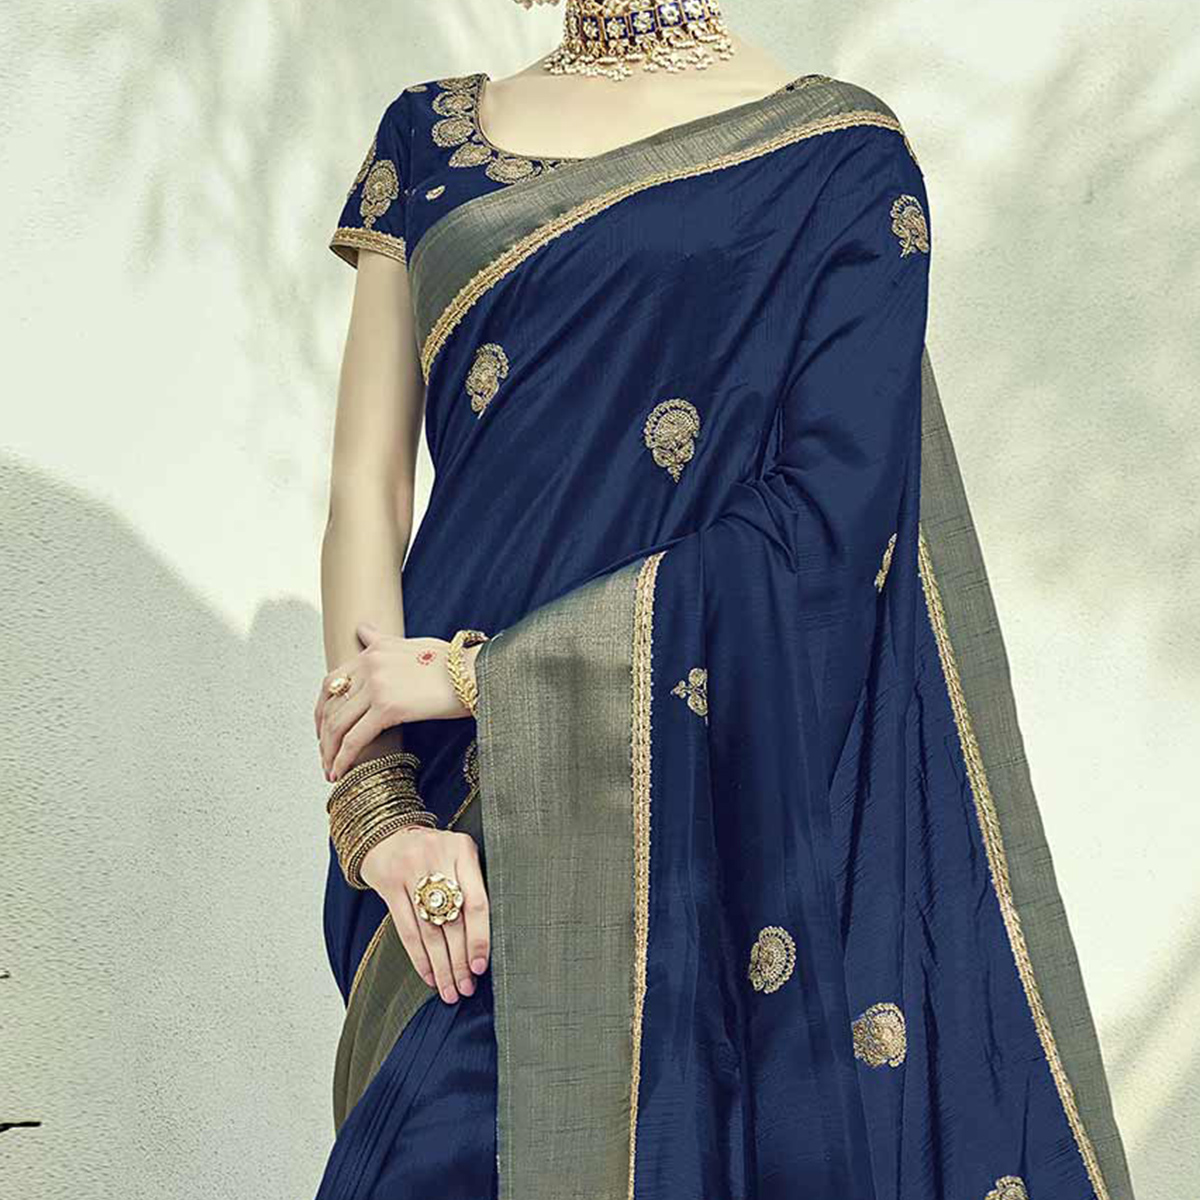 Stupendous Navy Blue Colored Embroidered Partywear Dual Tone Silk Saree